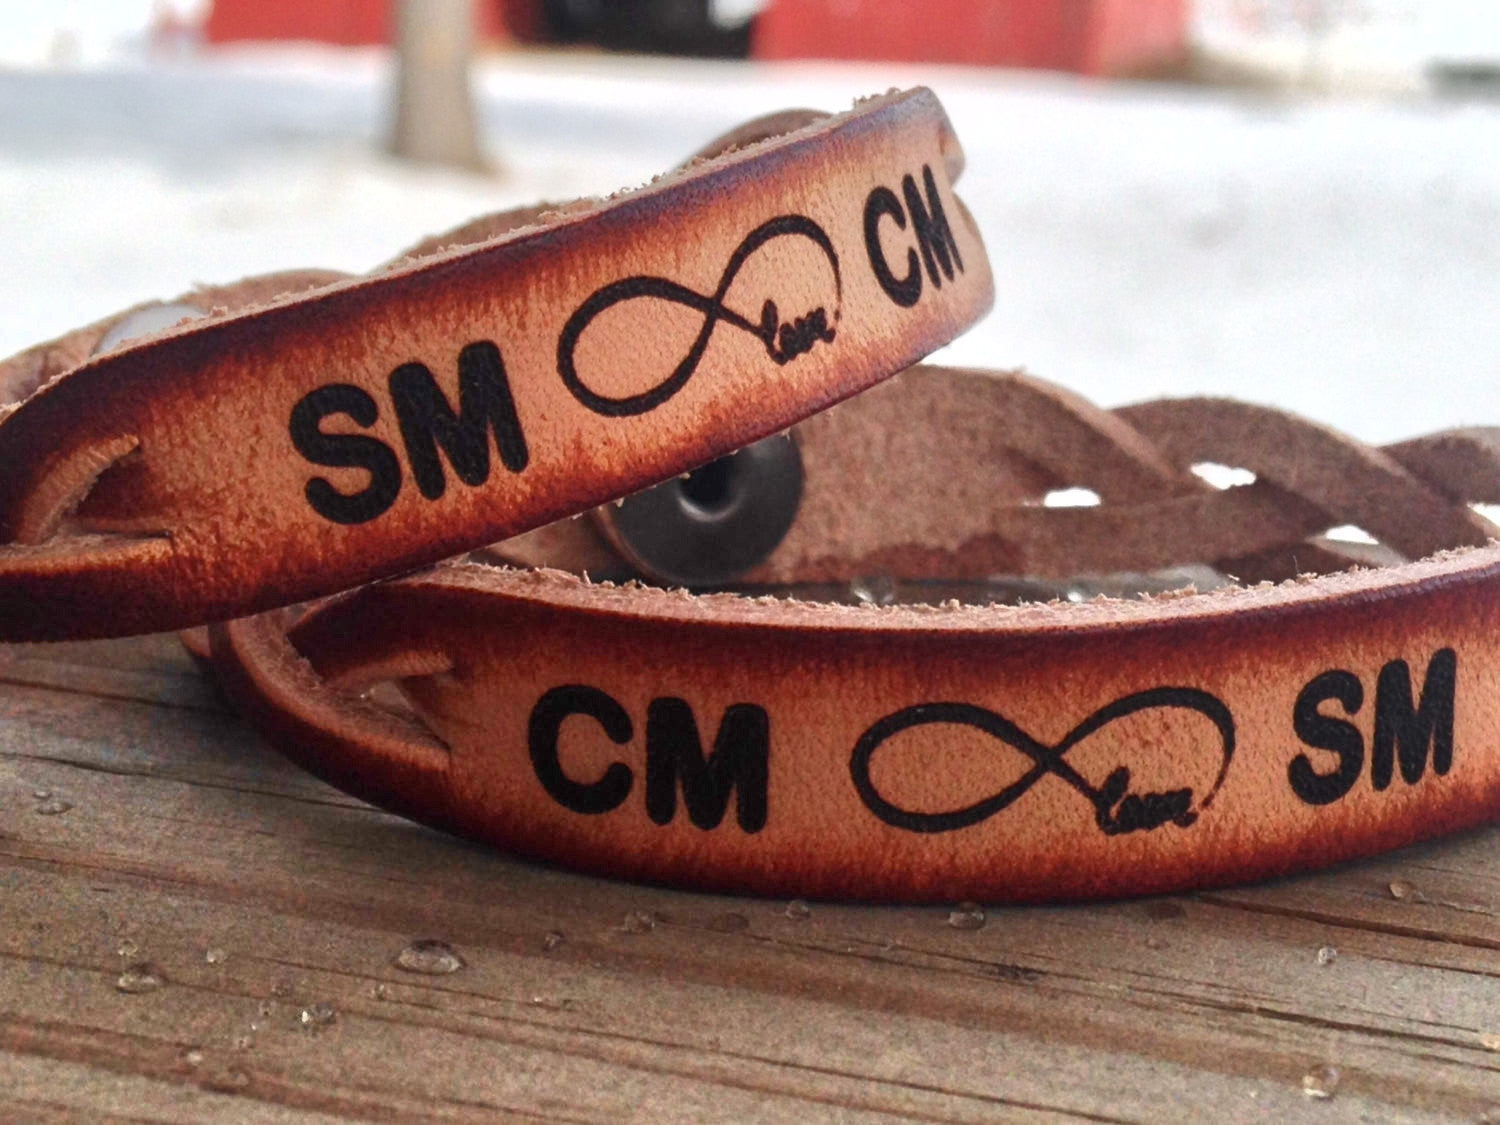 INFINITY LOVE Bracelets, Custom Bracelets for Two, Initials Engraved Free!